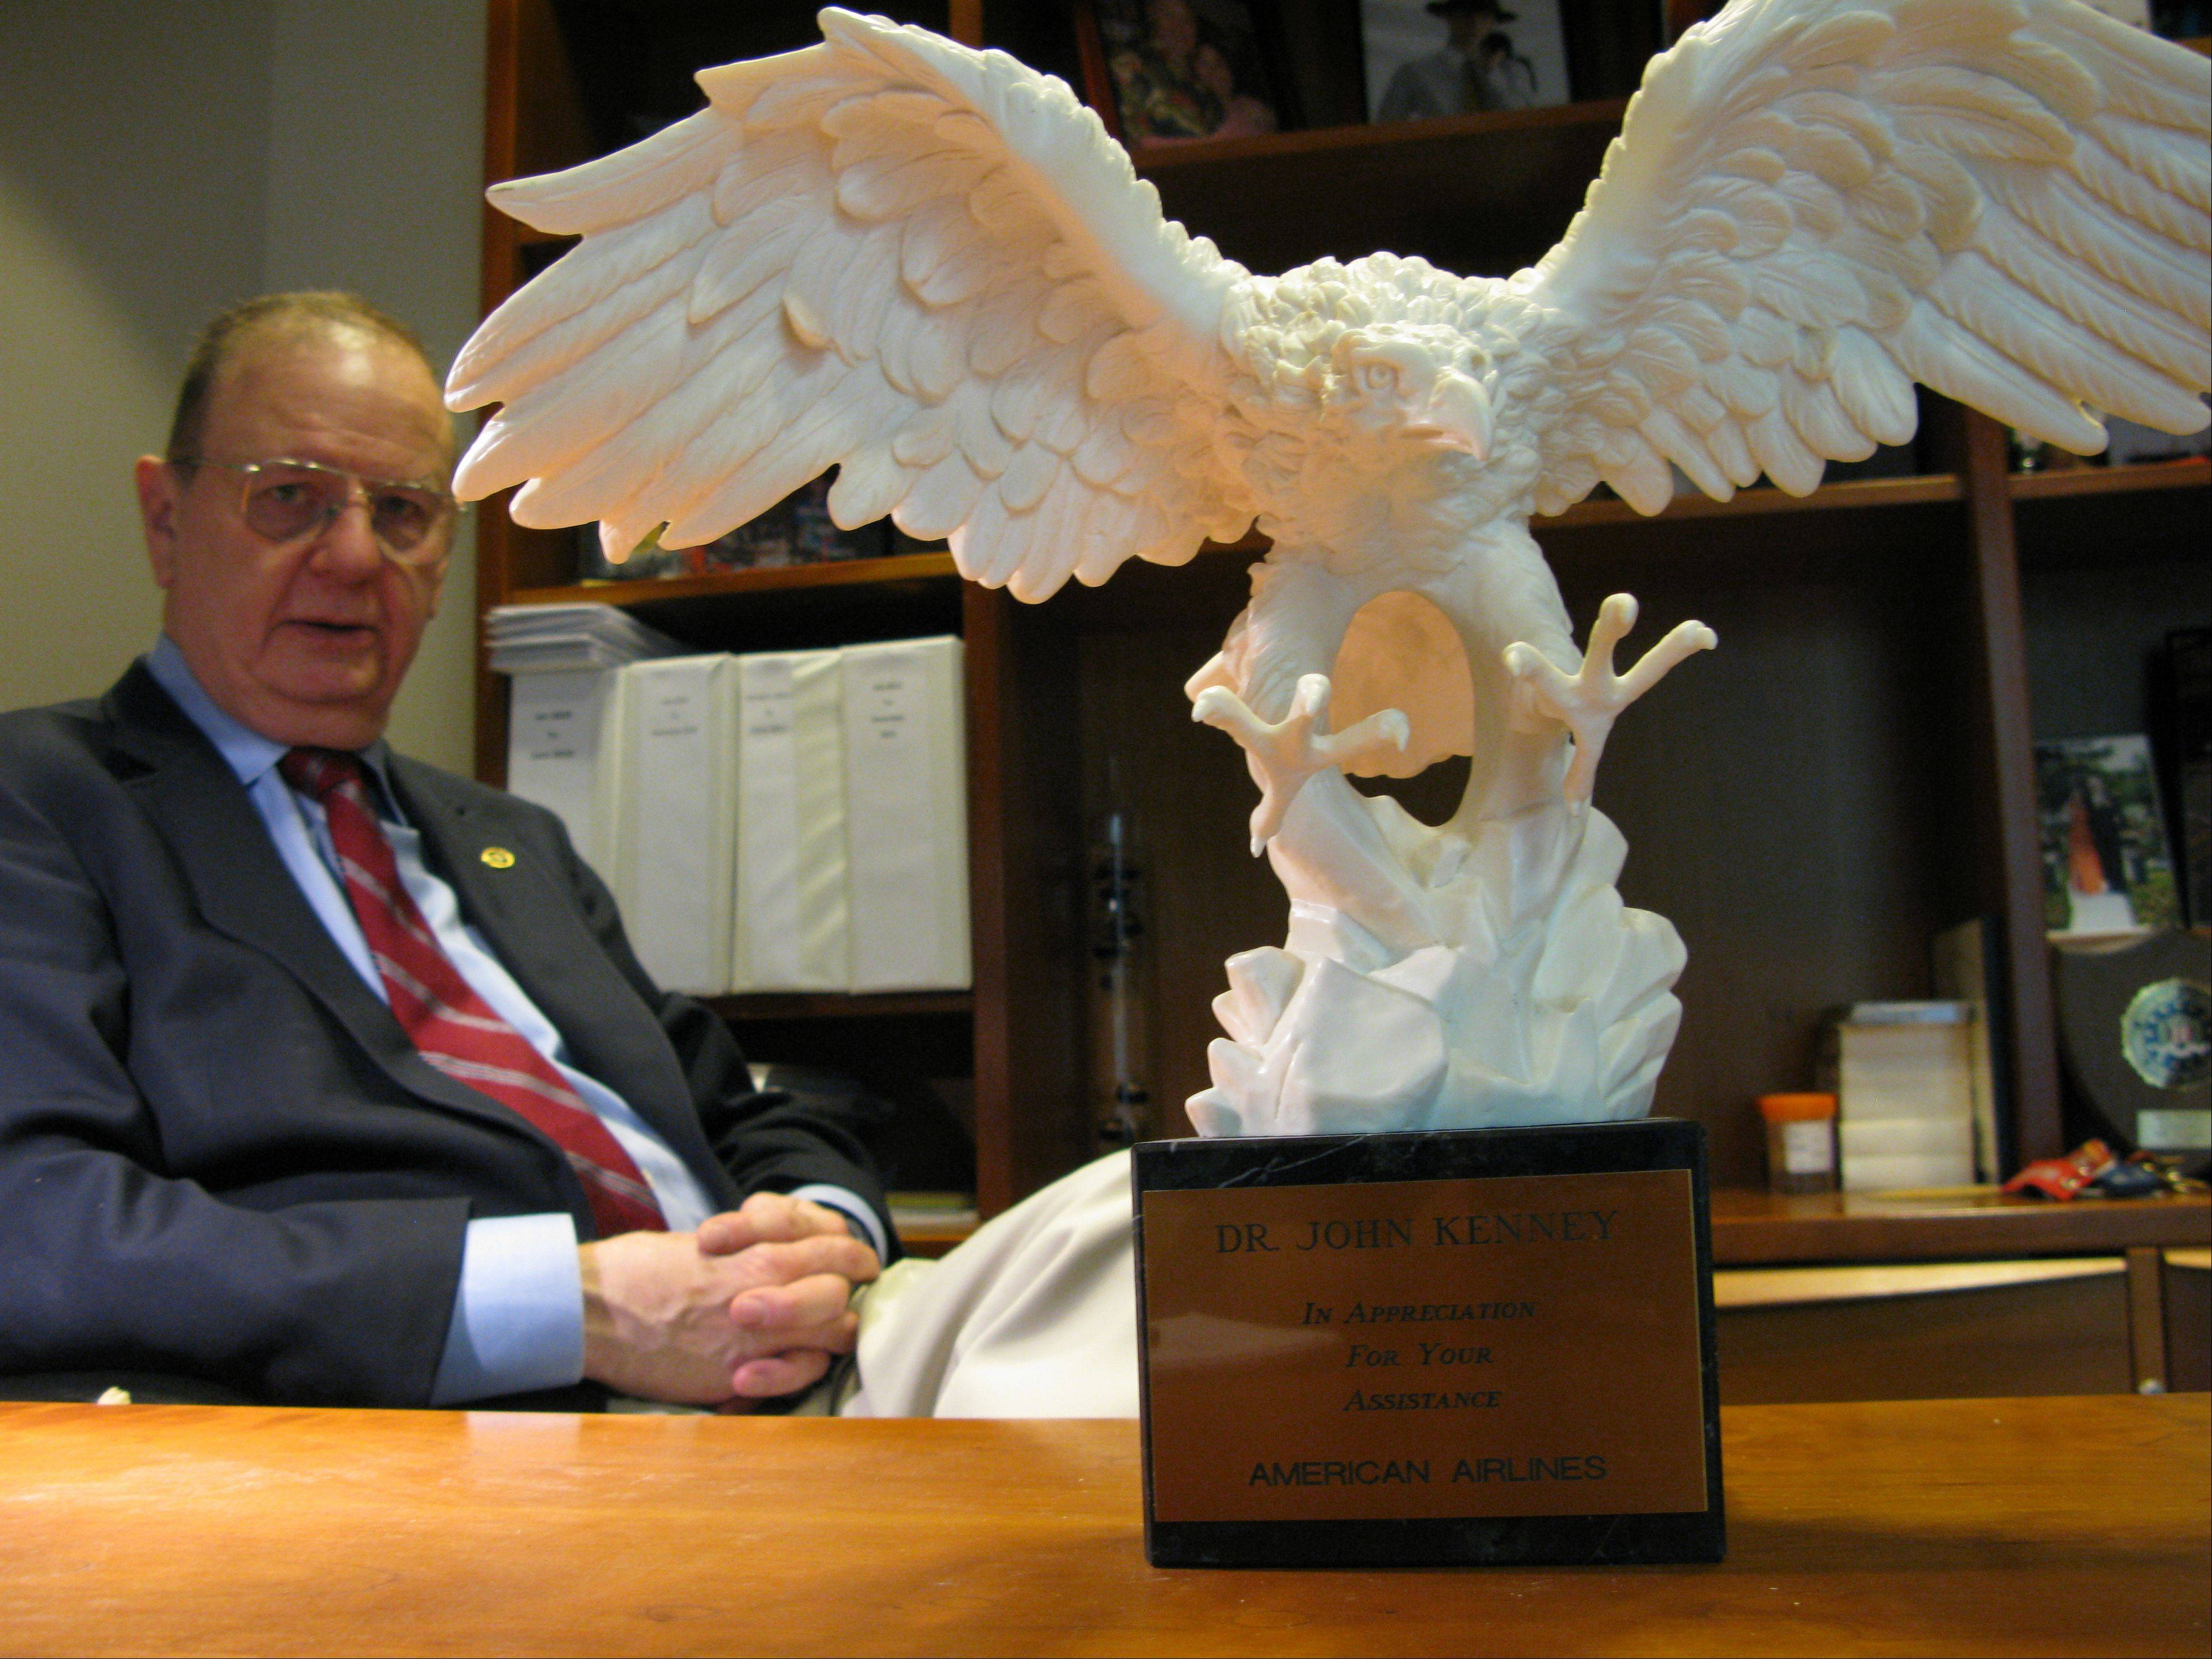 Dr. John Kenney of Park Ridge was among a team of 30 forensic dentists tapped to identify the 273 victims of the American Airlines Flight 191 crash on May 25, 1979. American Airlines awarded Kenney the eagle statue for his work identifying the victims of plane crashes.